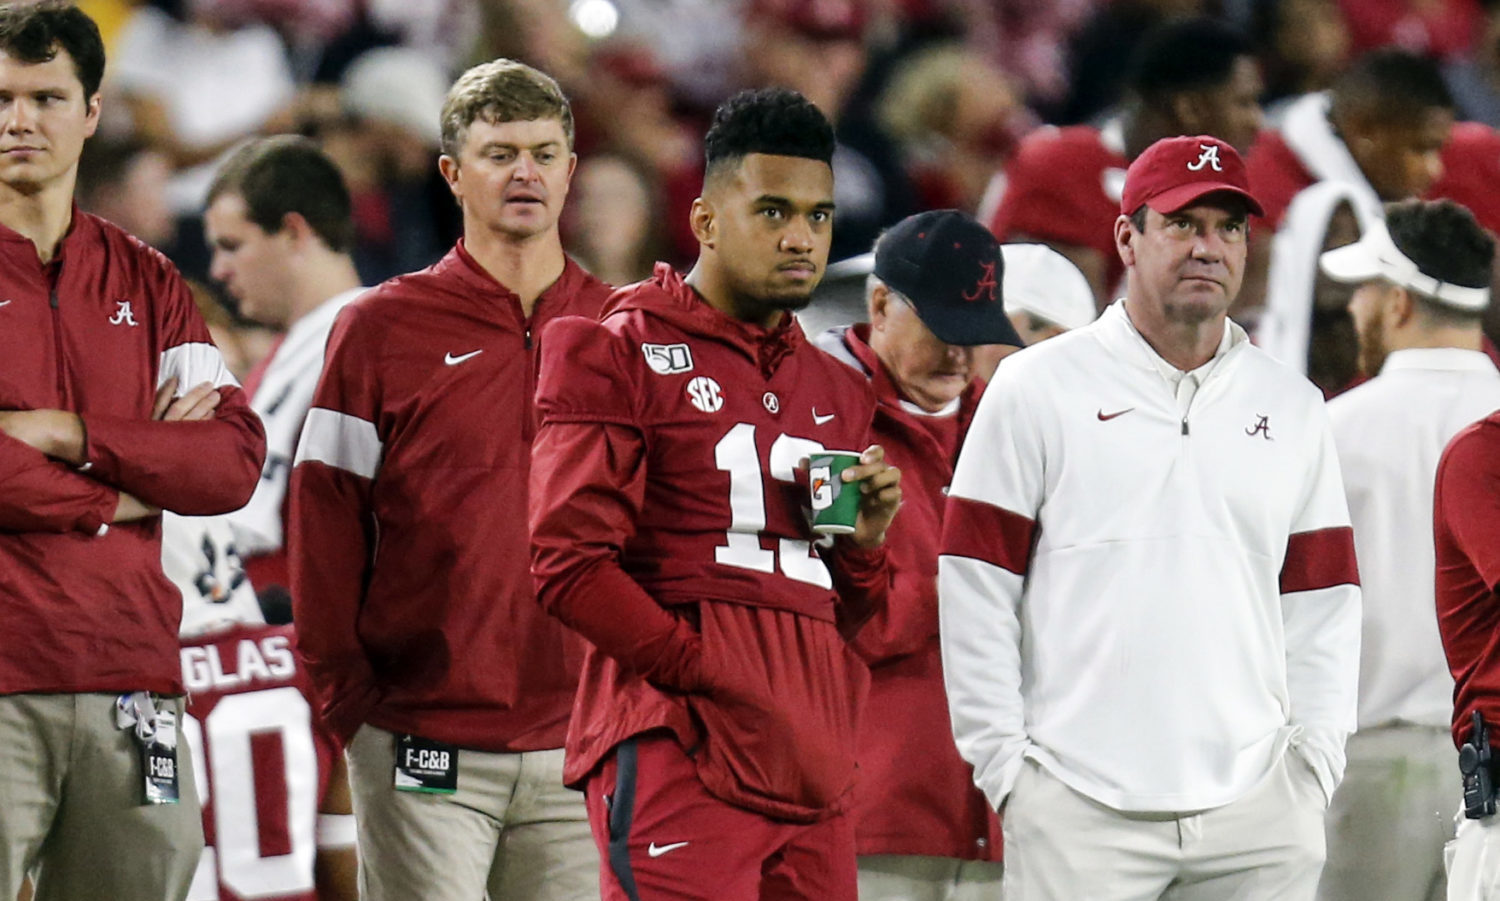 Tua Tagovailoa S Dad Discusses Nfl Decision Mixed Family Emotions